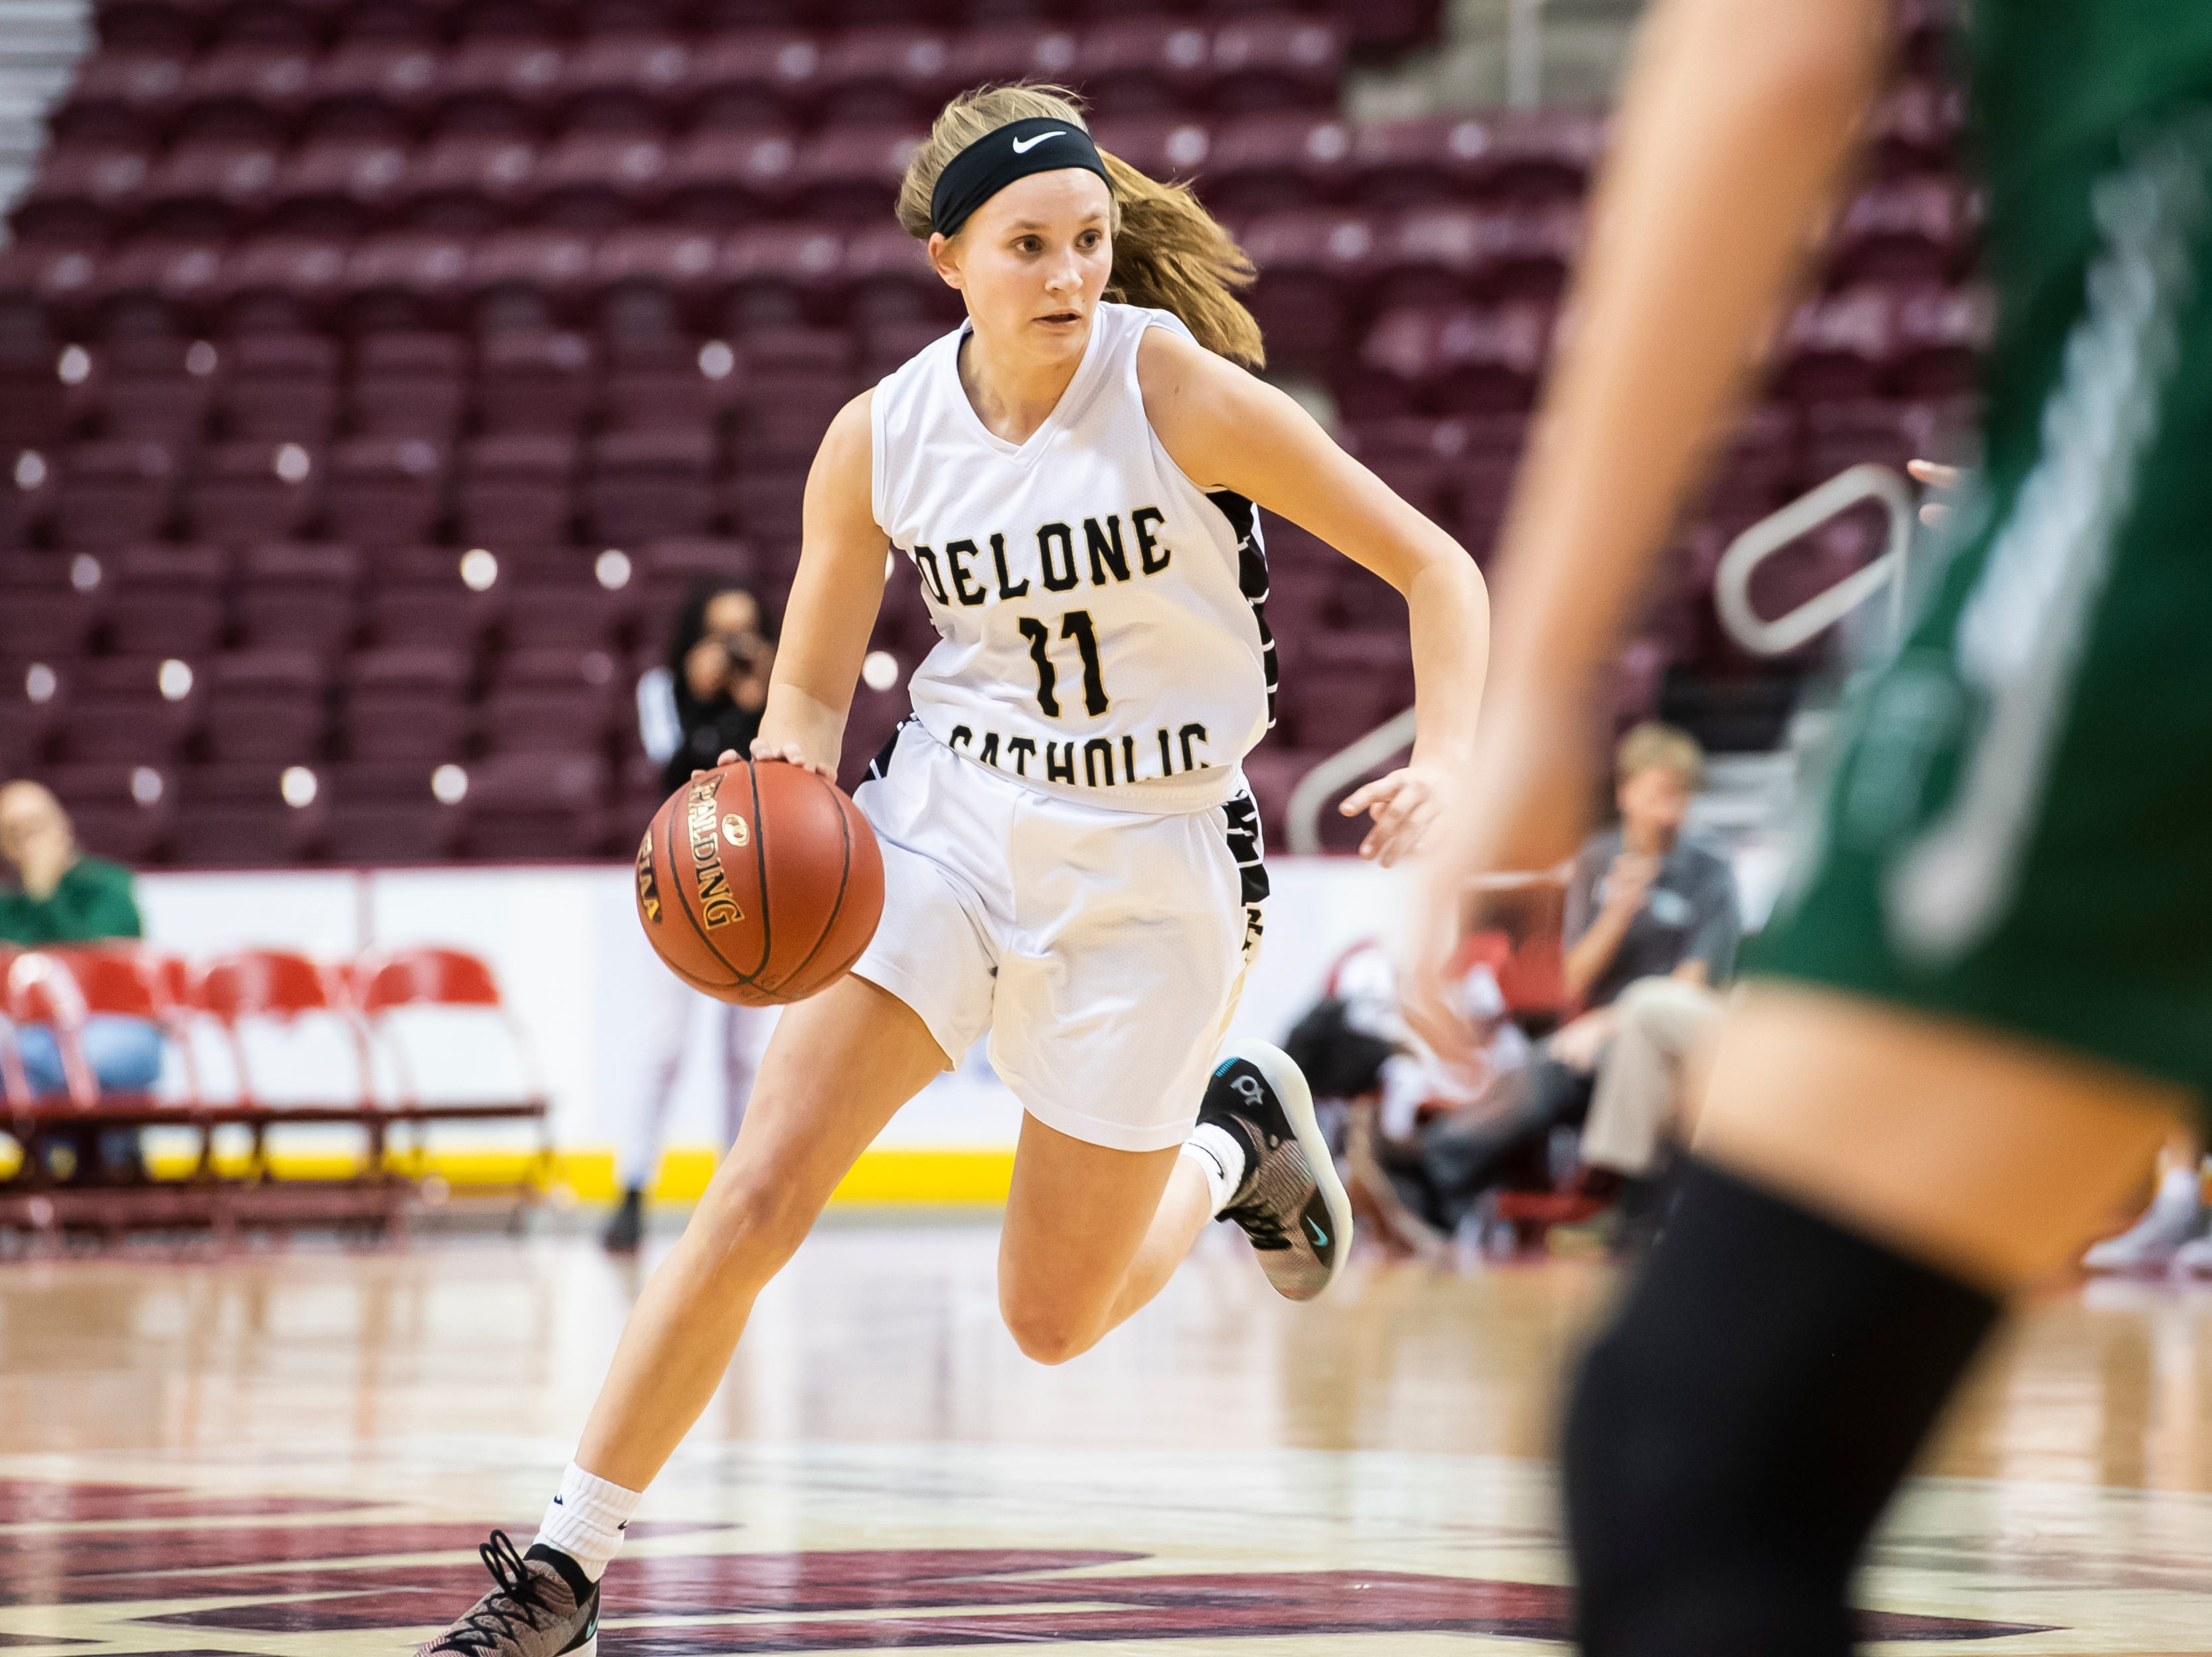 Delone Catholic's Riley Vingsen drives during the District 3 3A girls championship game against Trinity at the Giant Center in Hershey Wednesday, Feb. 27, 2019. The Squirettes fell 44-33.